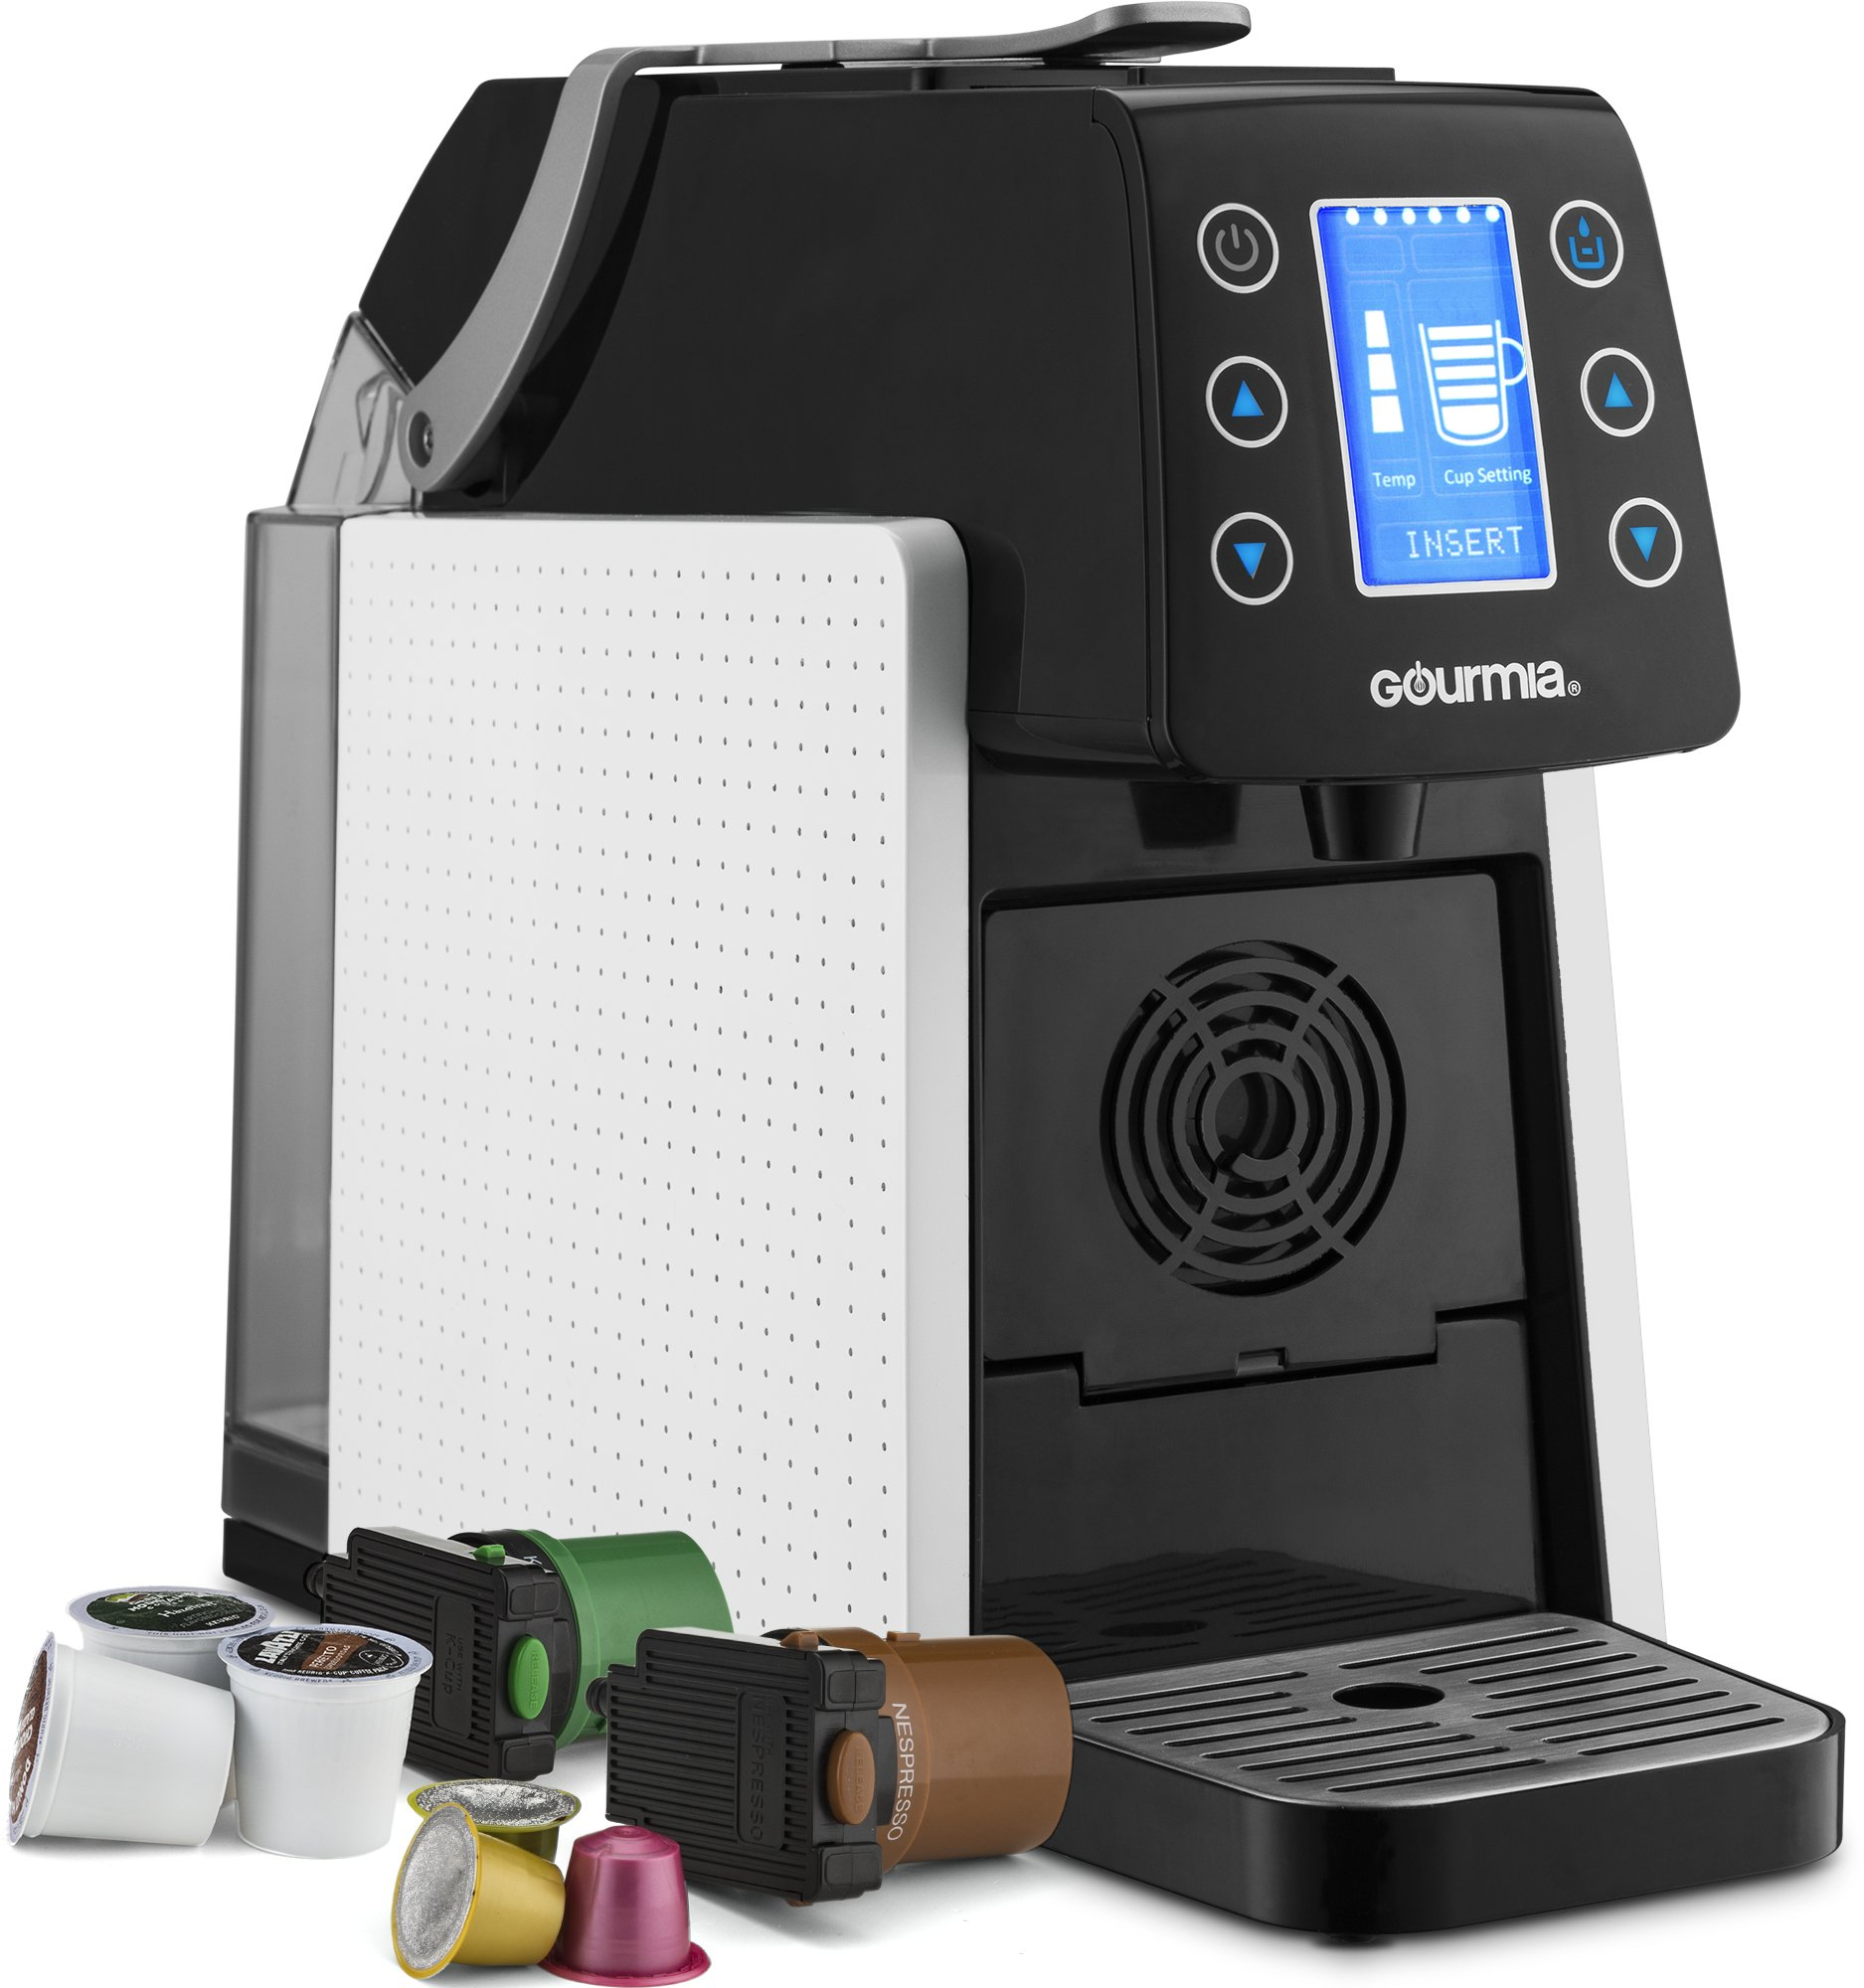 Gourmia GCM5100 Espresso Machine, Multi Capsule, White by Gourmia